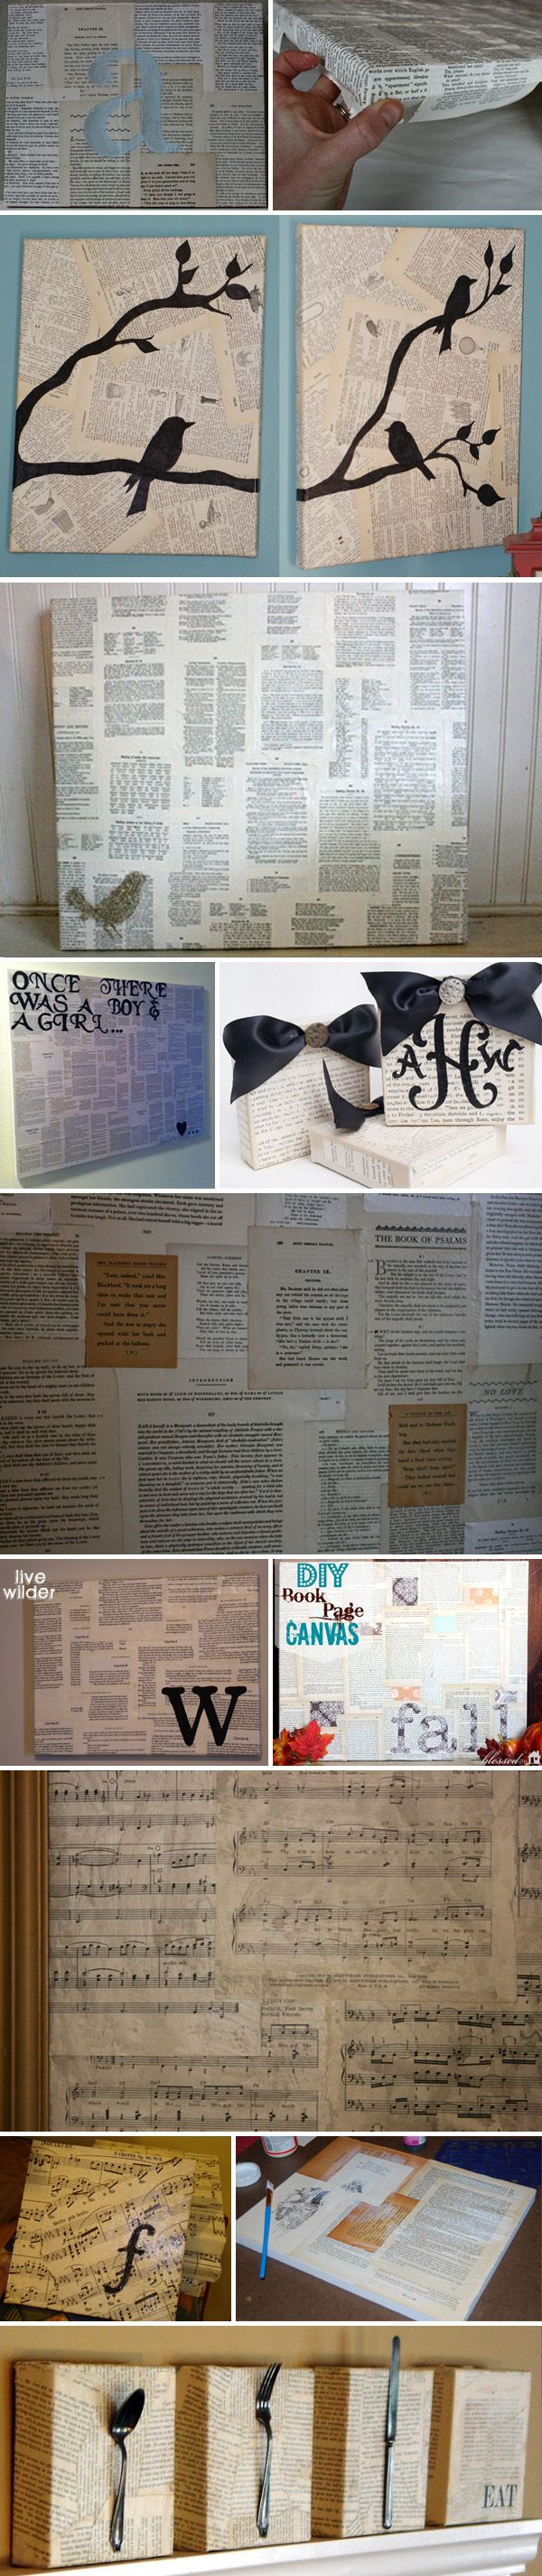 BOOK CRAFT / WALL ART :: Tons of INSPIRATION for Book Page (& Sheet Music) Wall Art ::